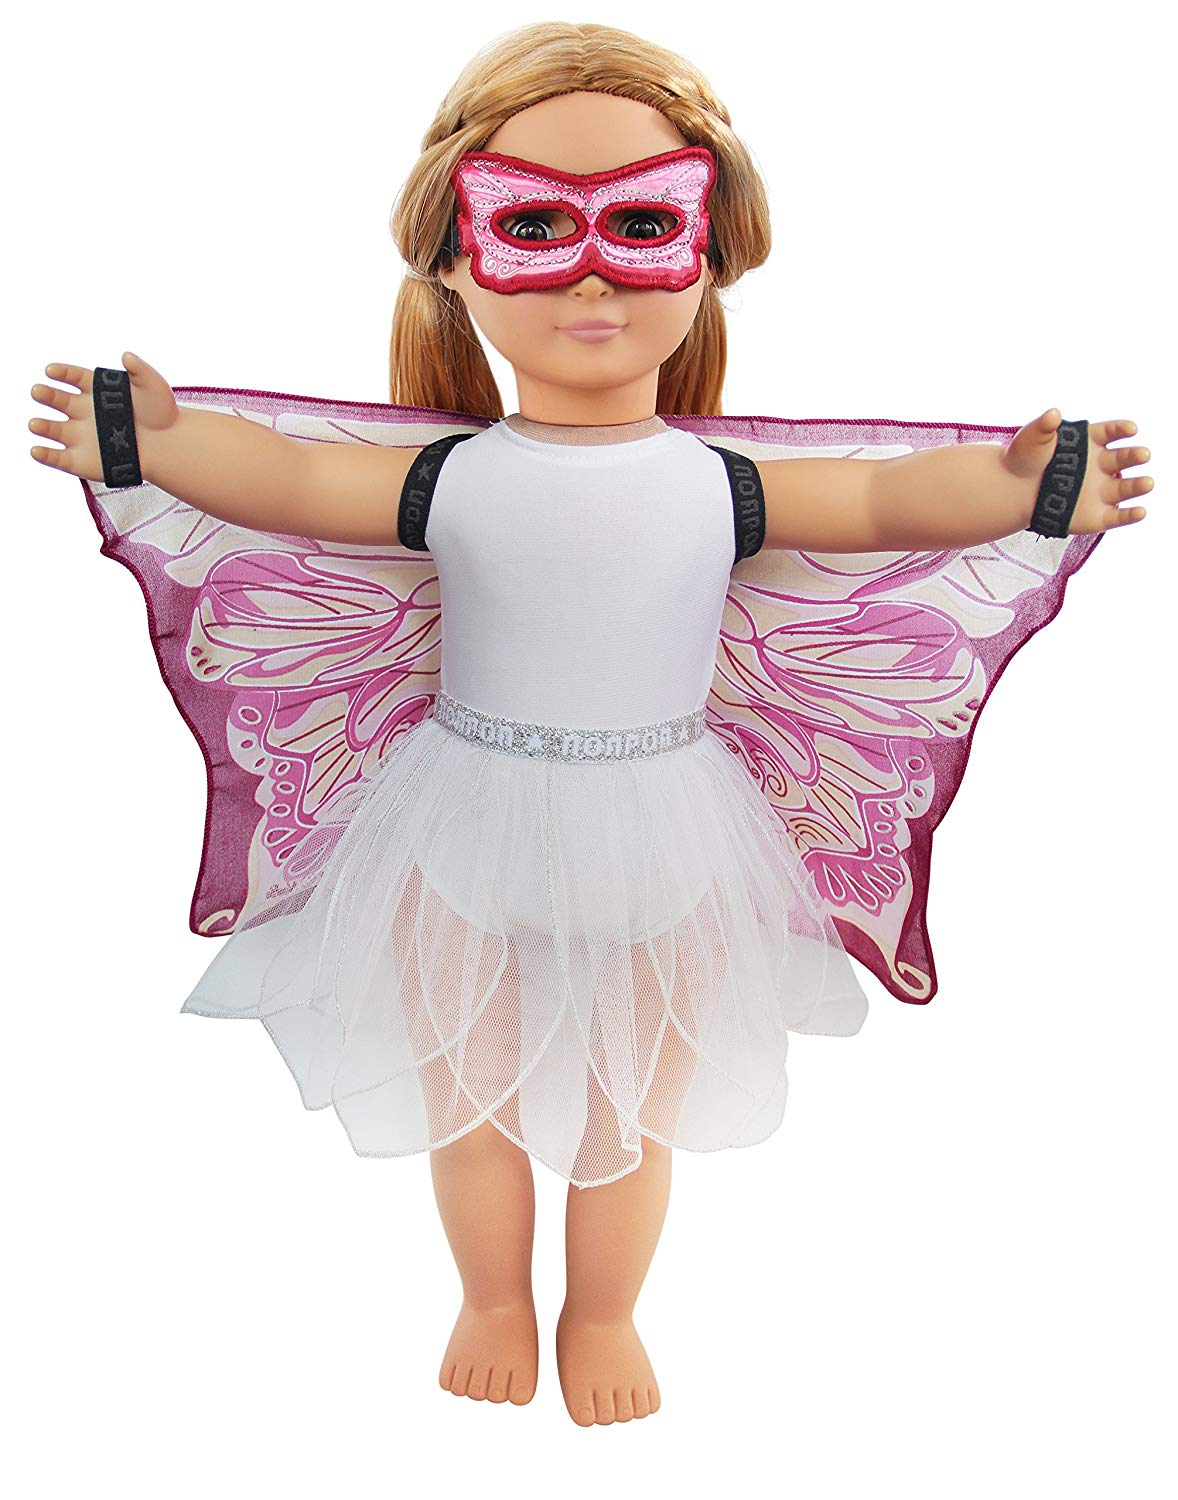 Dreamy Dress-Ups 71265 4-PC Playset for 18″ / 18 inch / 46 cm Dolls, Pink Fairy